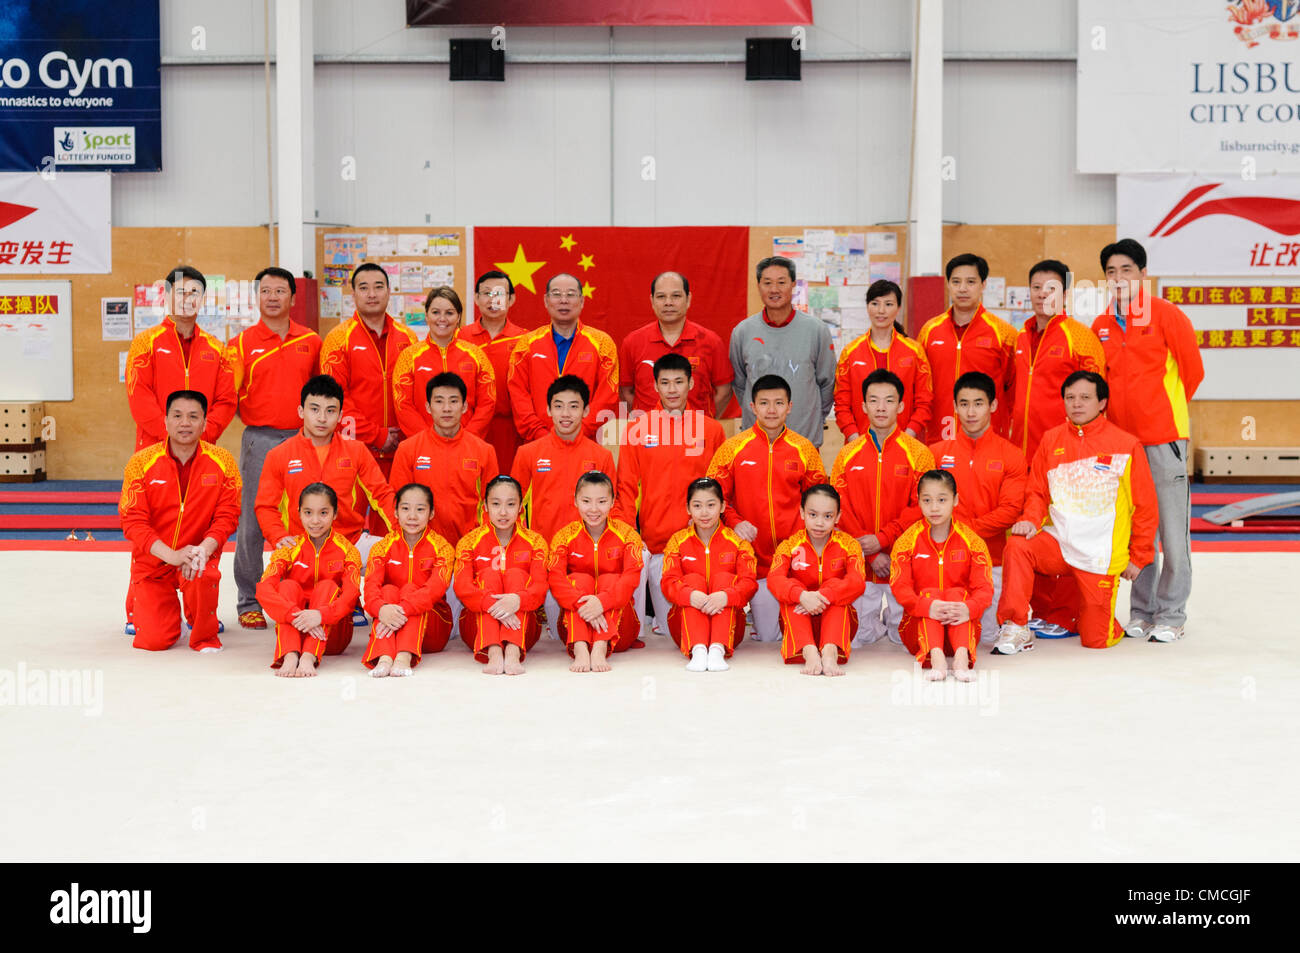 Lisburn, 18/07/2012 - Chinese gymnastic team and coaches for London 2012 Olympic games in Lisburn, Northern Ireland - Stock Image